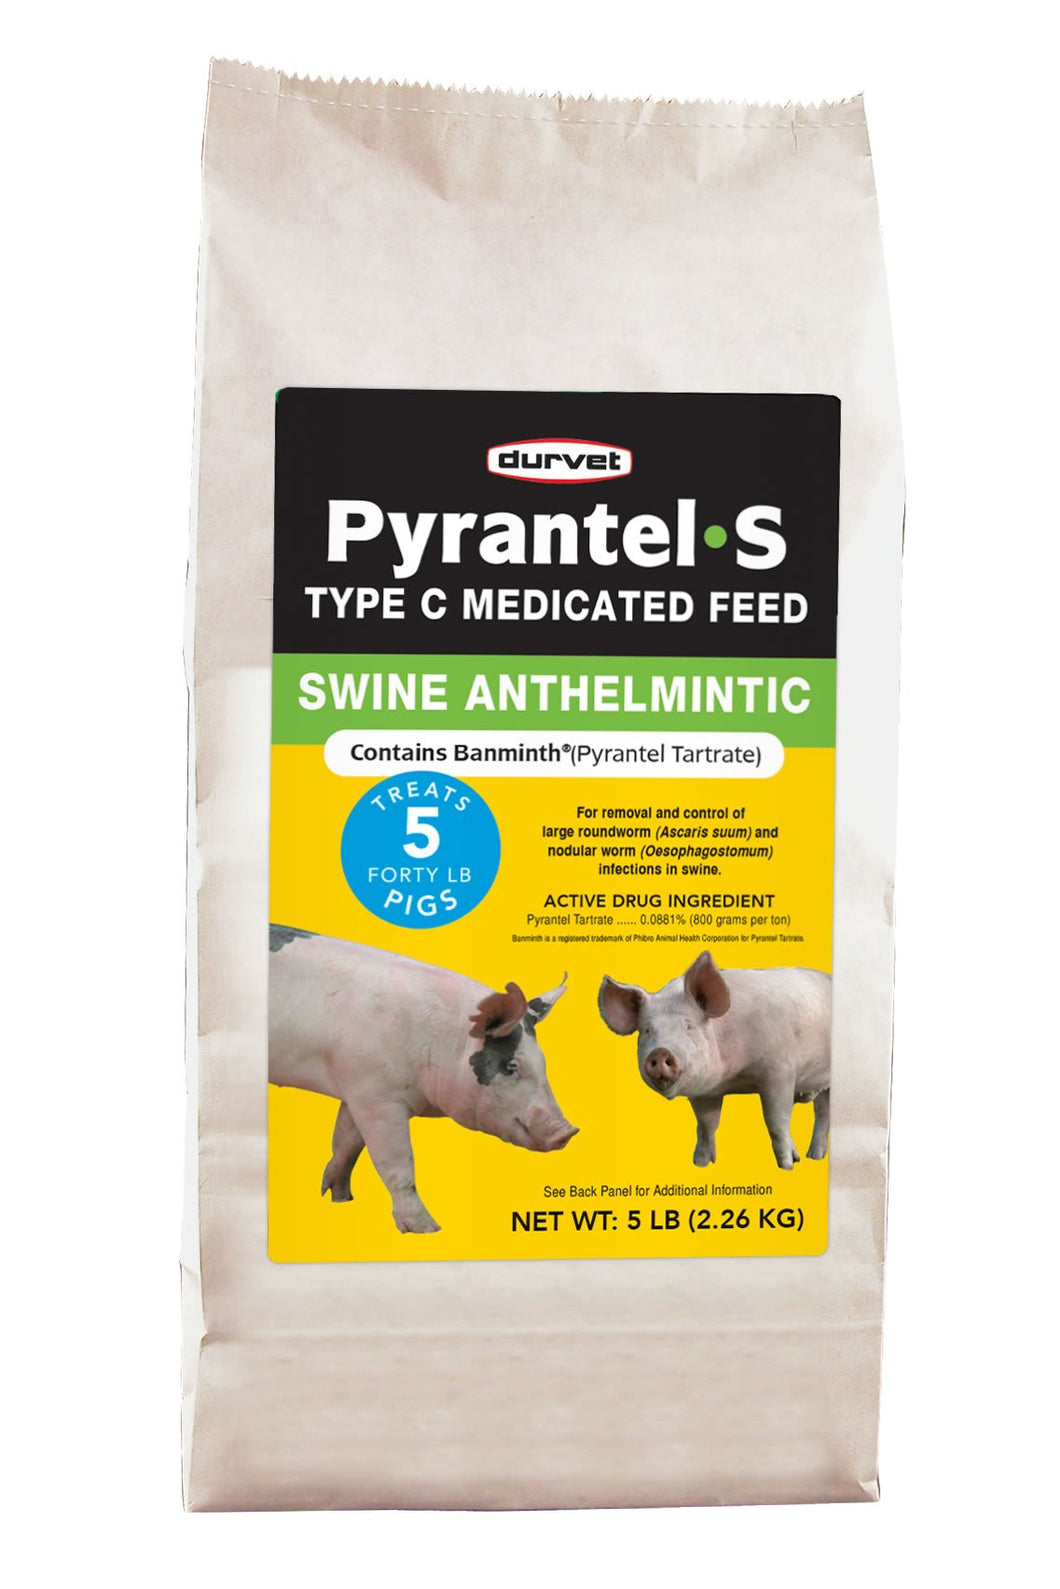 Durvet Pyrantel-S Type C Medicated Feed for Swine